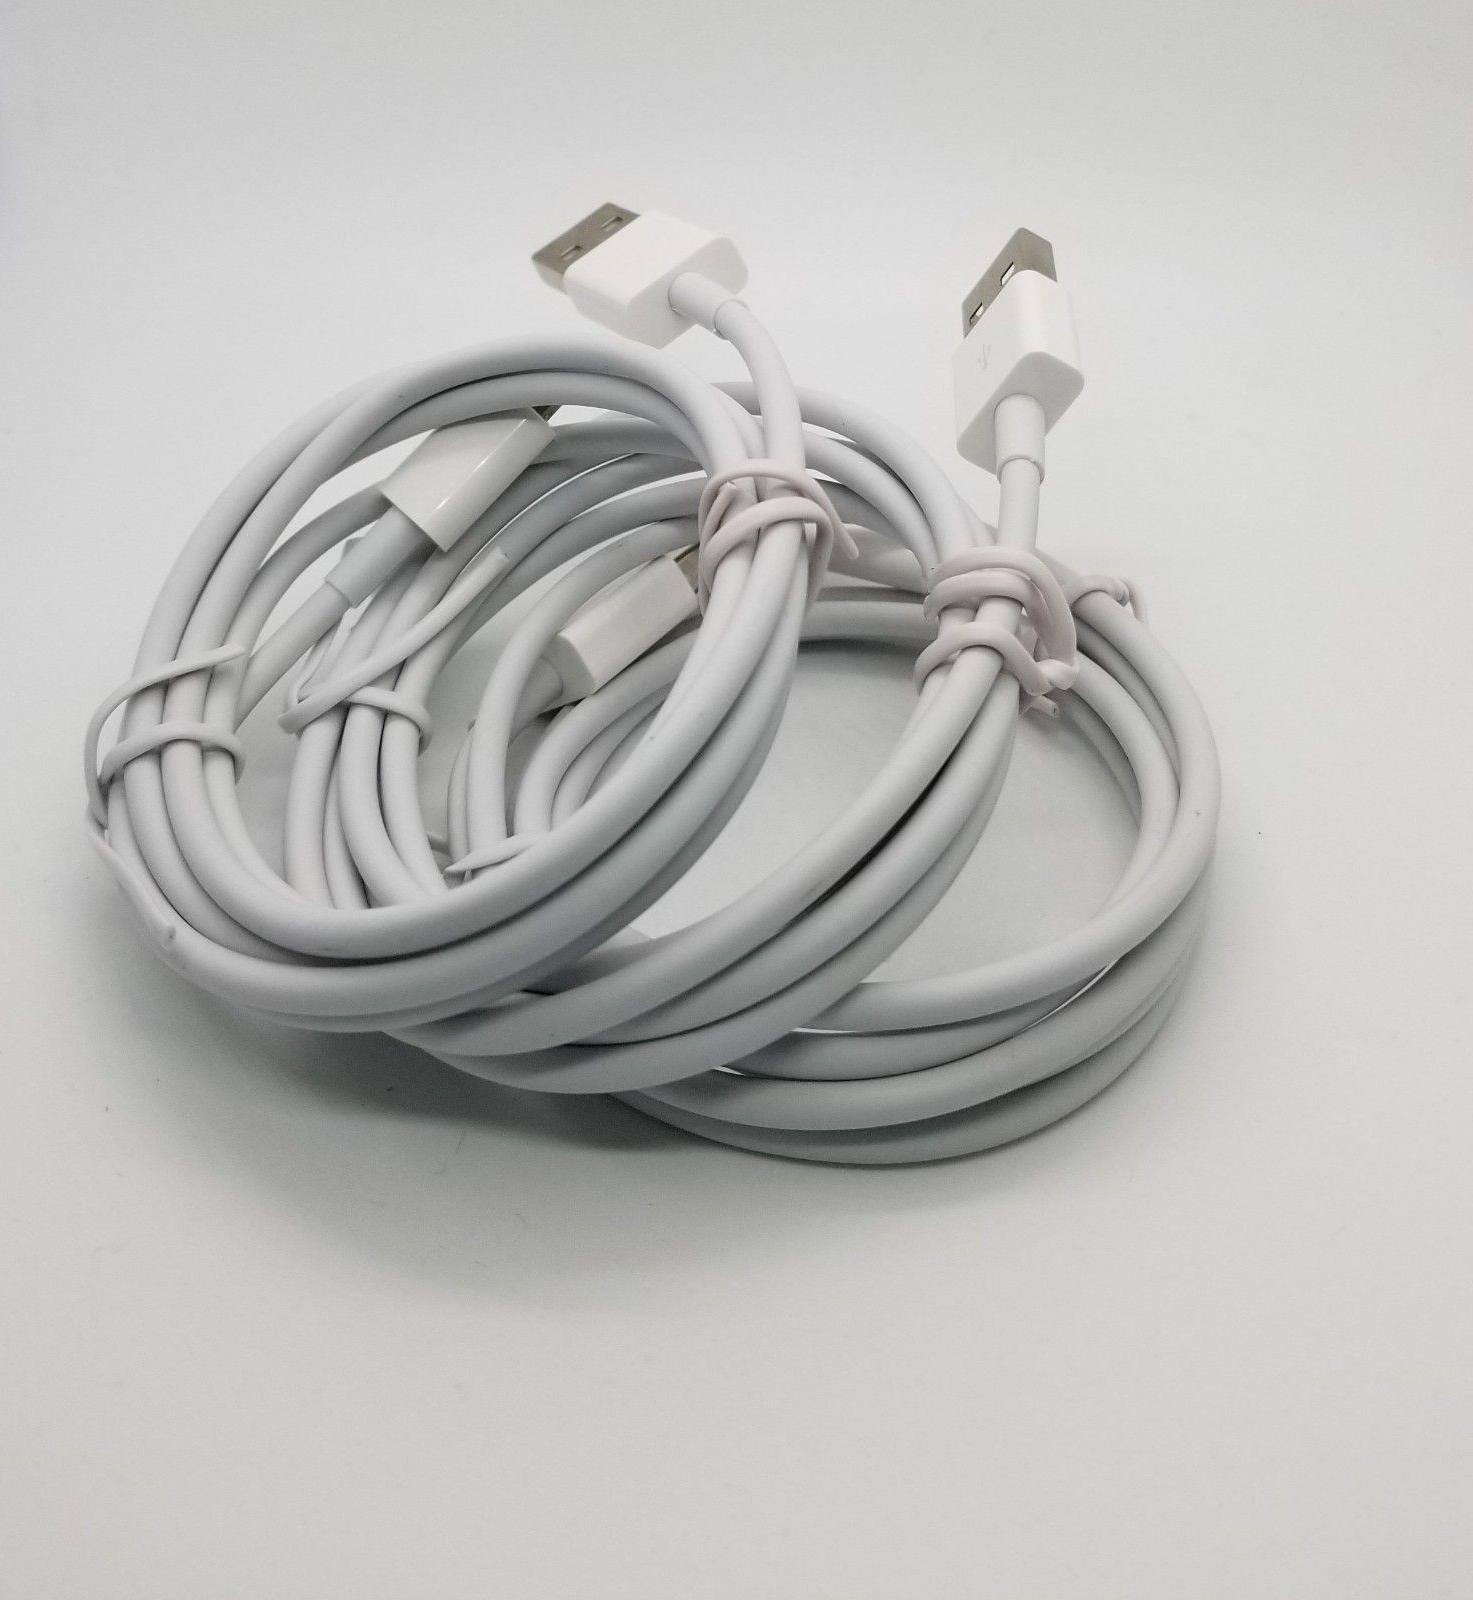 Charging Cords For Apple iPhone-5-S-6-7-8-X-Plus